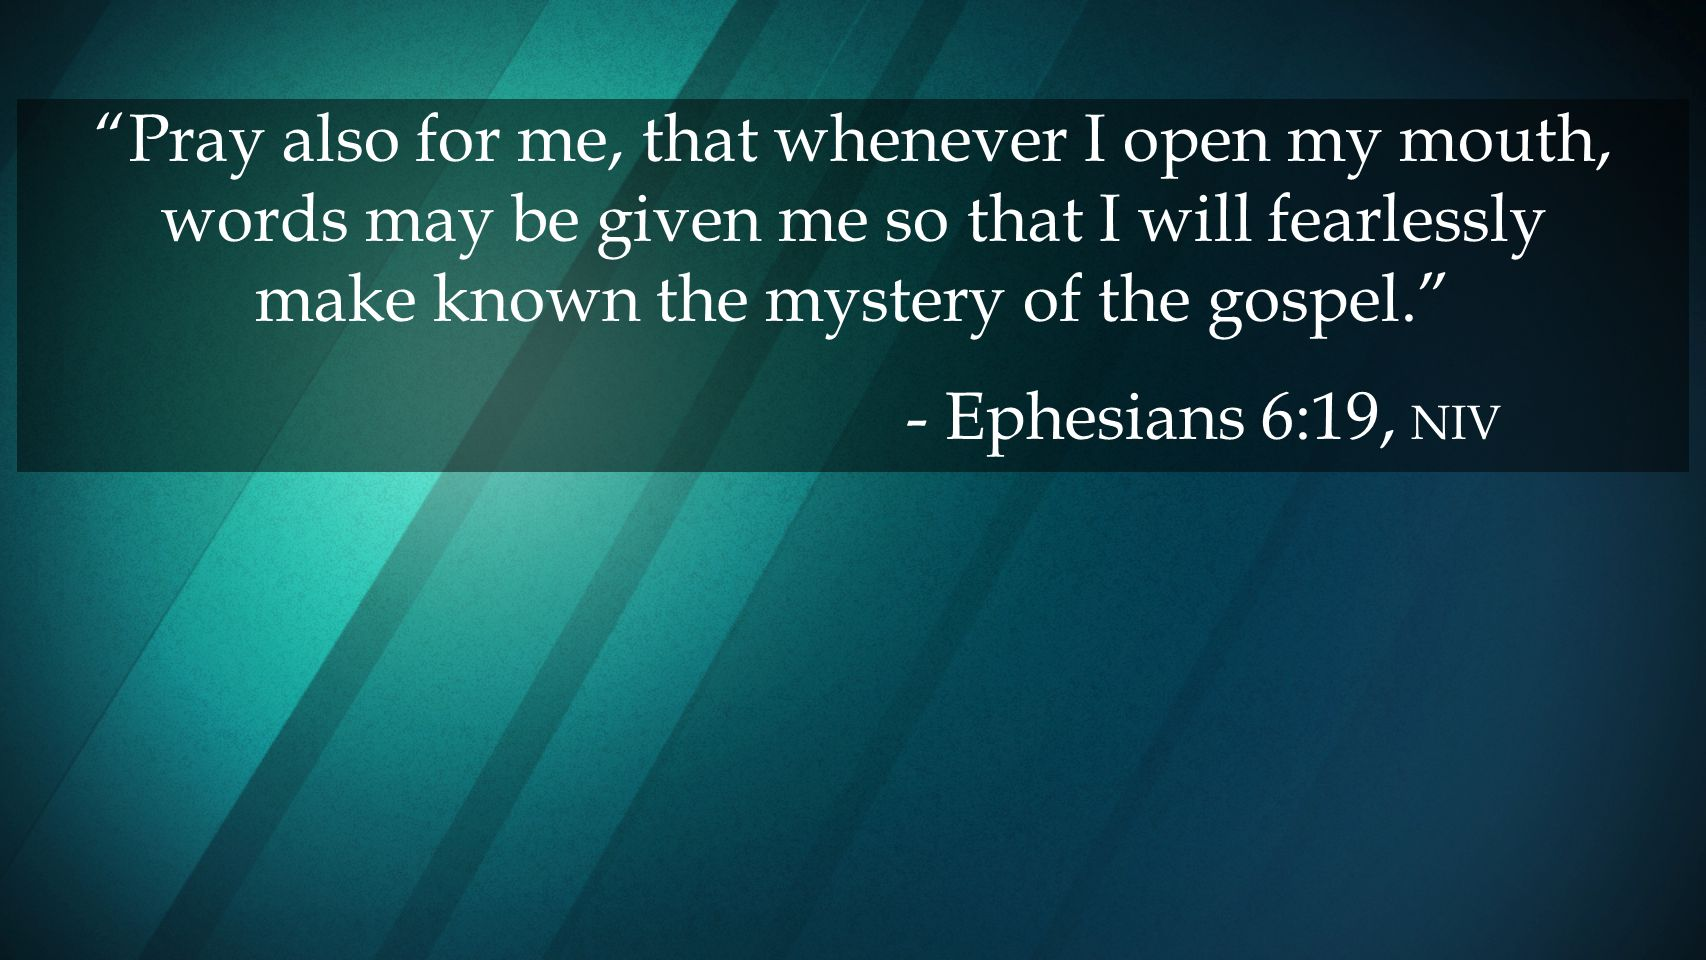 Pray also for me, that whenever I open my mouth, words may be given me so that I will fearlessly make known the mystery of the gospel.